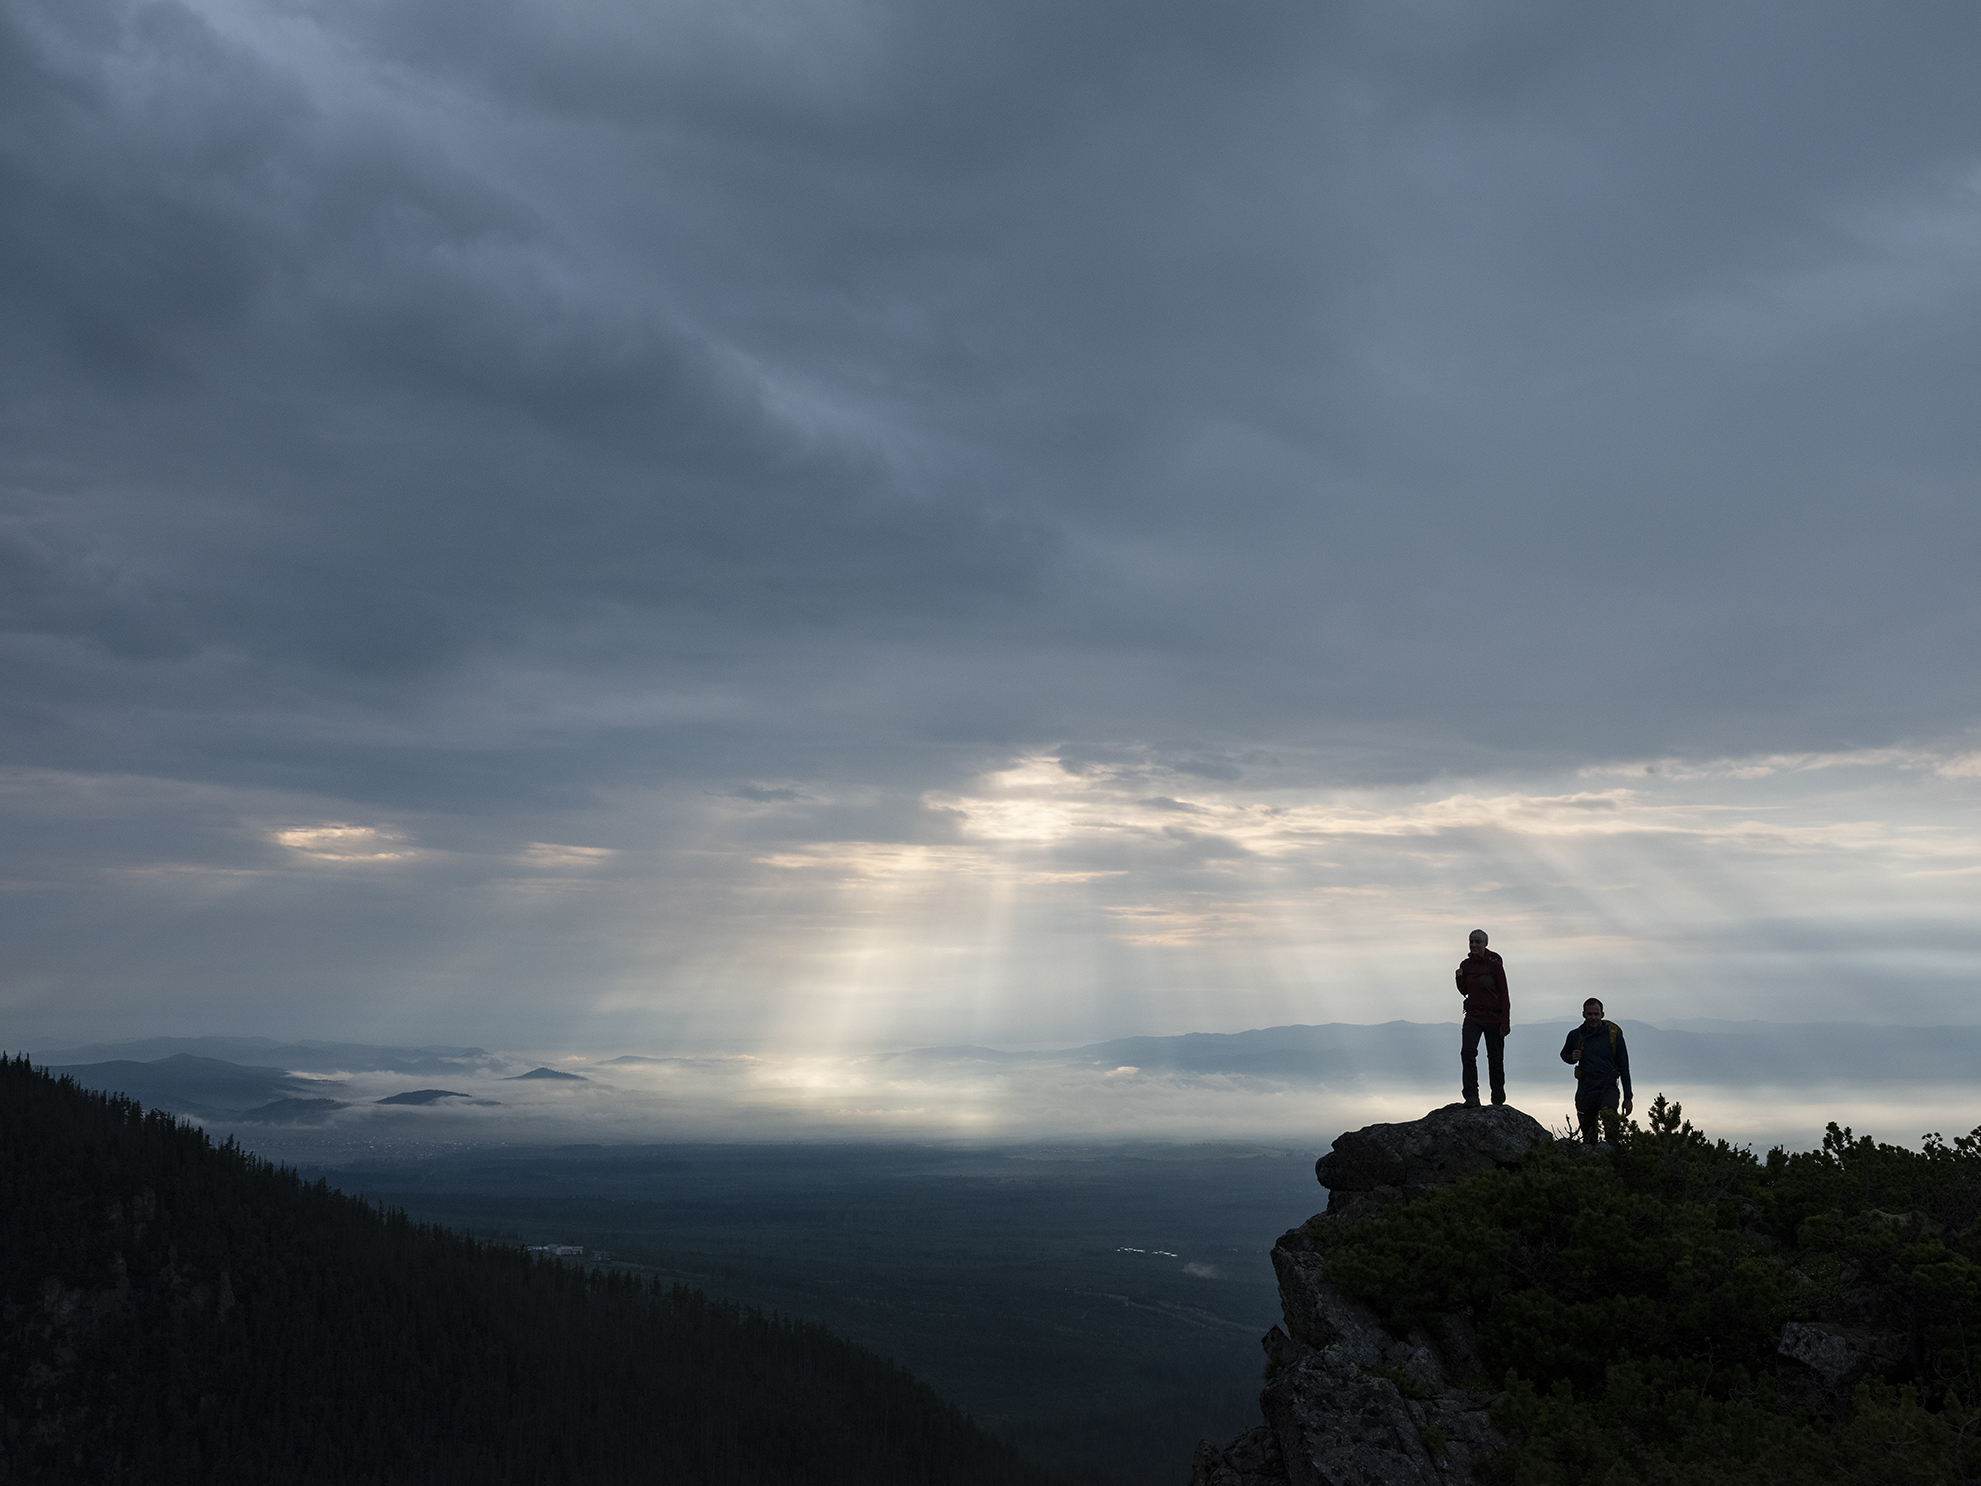 Two hikers on a mountain summit on a cloudy day